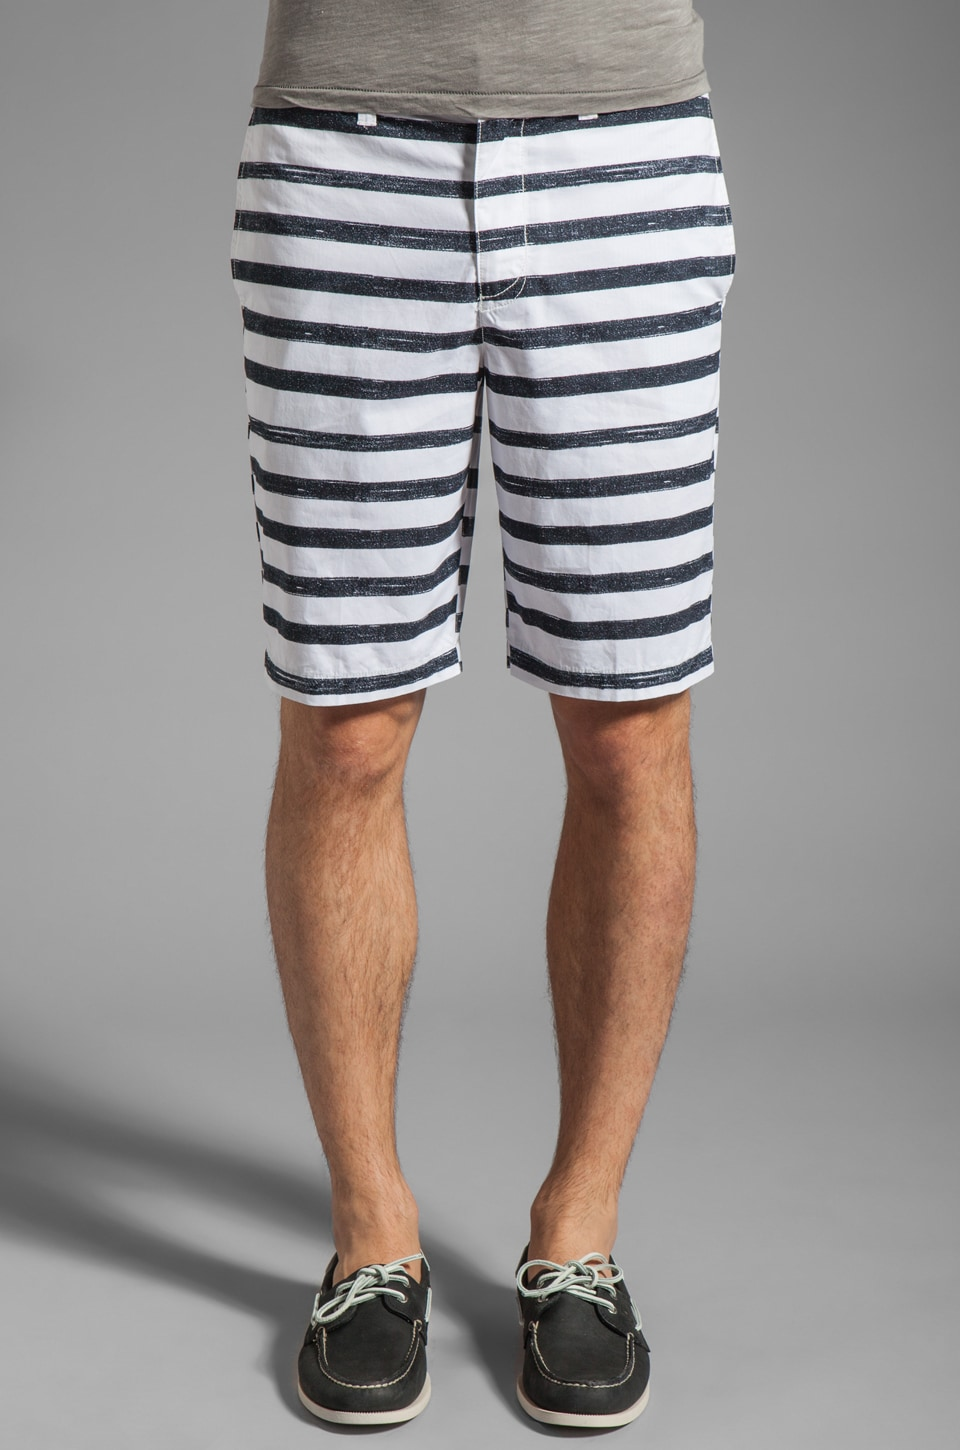 Penguin Sailor Short Margate Fit Short en Bright White